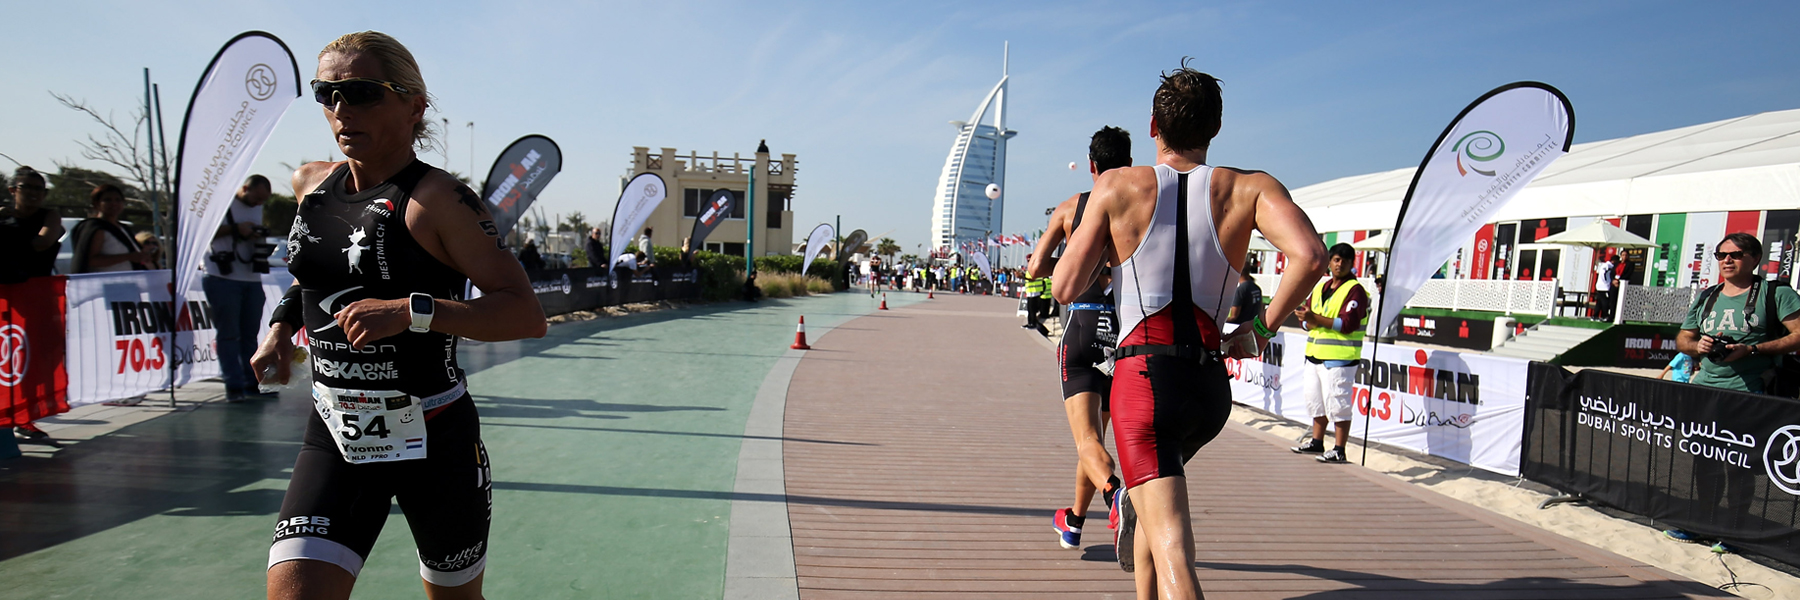 Run IRONMAN 70.3 Dubai